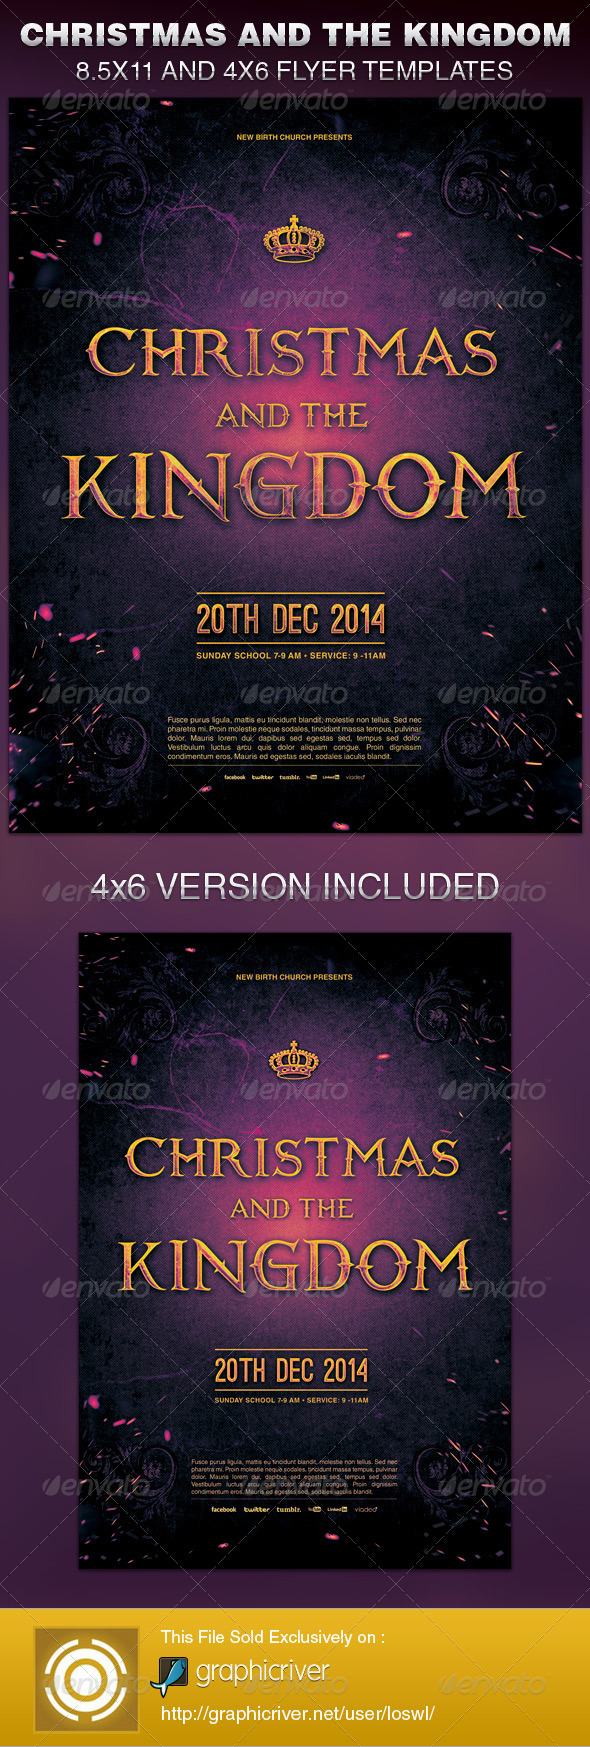 GraphicRiver Christmas and the Kingdom Church Flyer Template 6363061